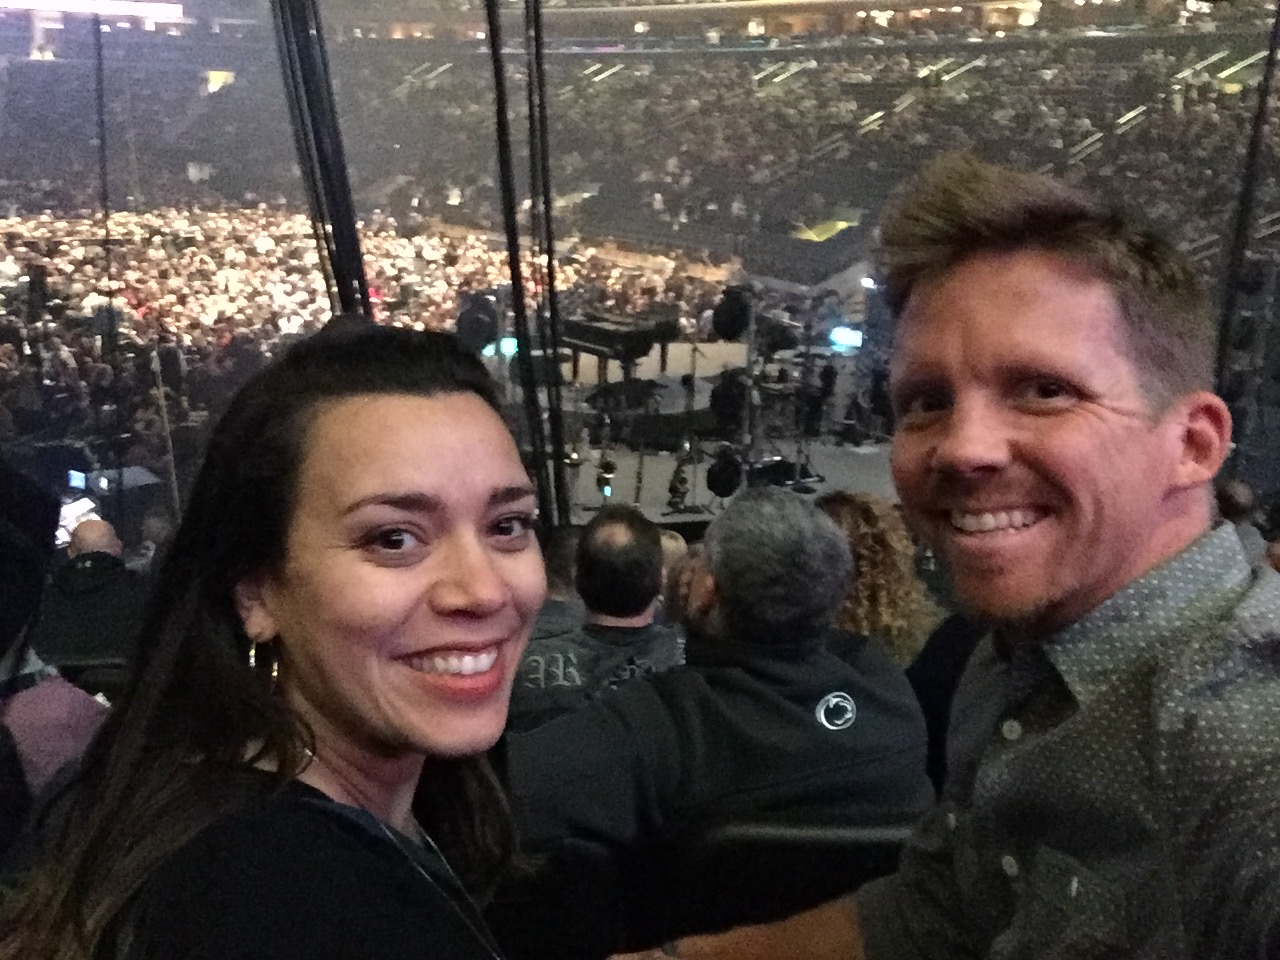 Saturday night we enjoyed a Billy Joel concert at Madison Square Garden! We sat behind the stage but the seats were great!